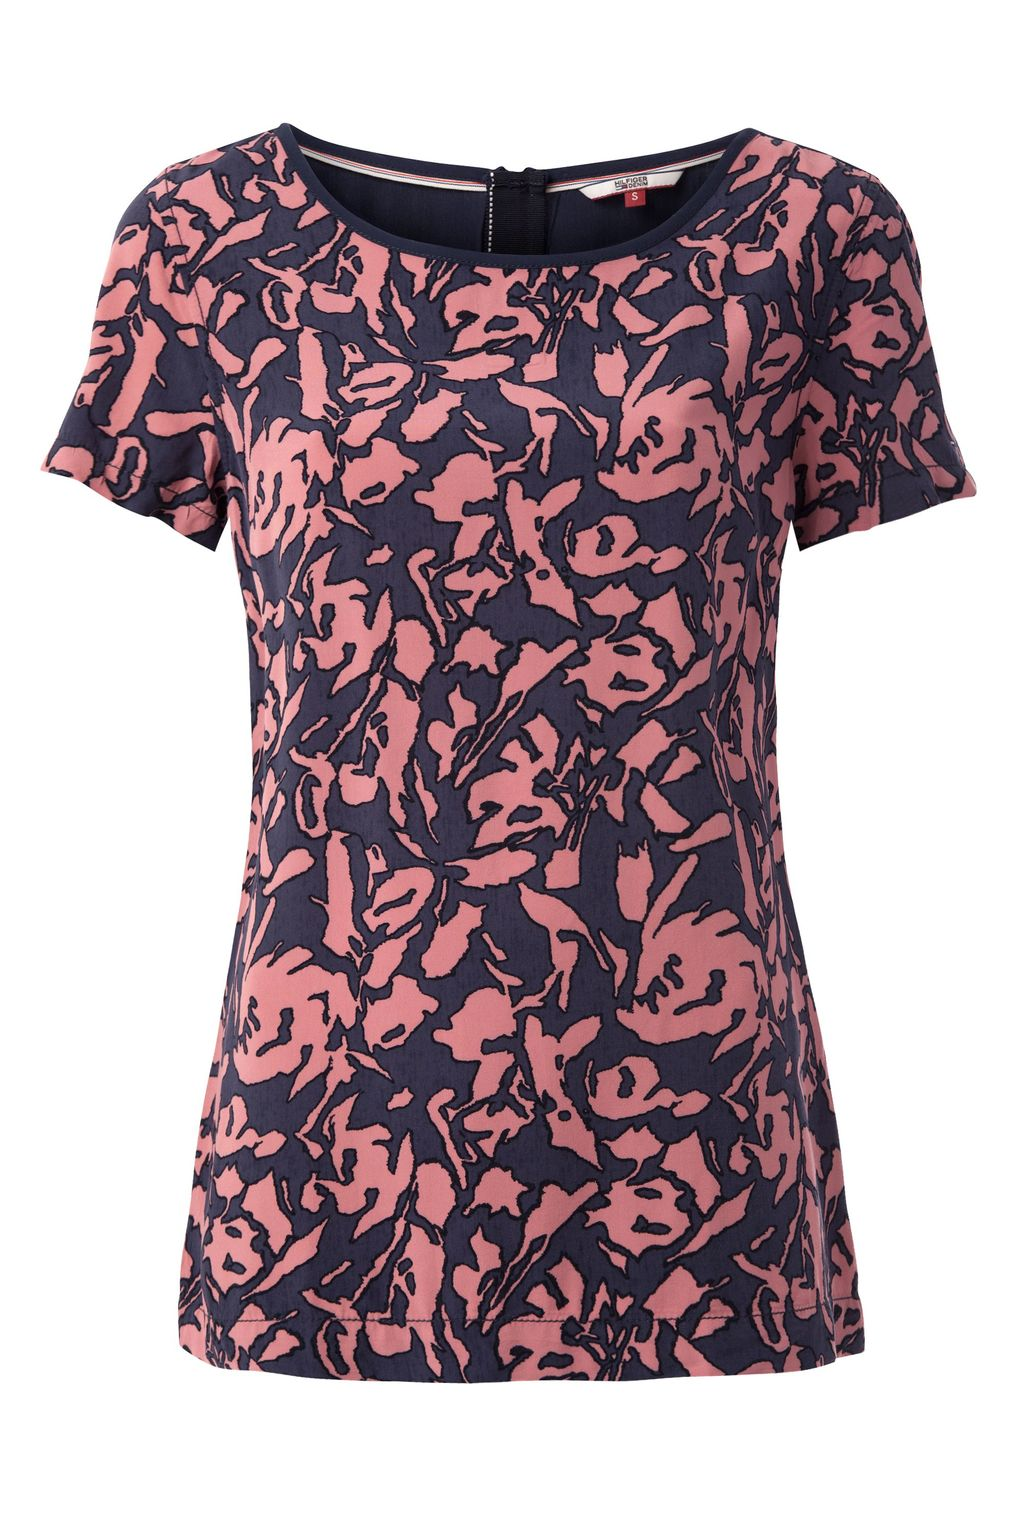 Printed Viscose Top, Navy - neckline: round neck; secondary colour: pink; predominant colour: navy; occasions: casual; length: standard; style: top; fibres: viscose/rayon - 100%; fit: body skimming; sleeve length: short sleeve; sleeve style: standard; pattern type: fabric; pattern: patterned/print; texture group: jersey - stretchy/drapey; multicoloured: multicoloured; season: s/s 2016; wardrobe: highlight